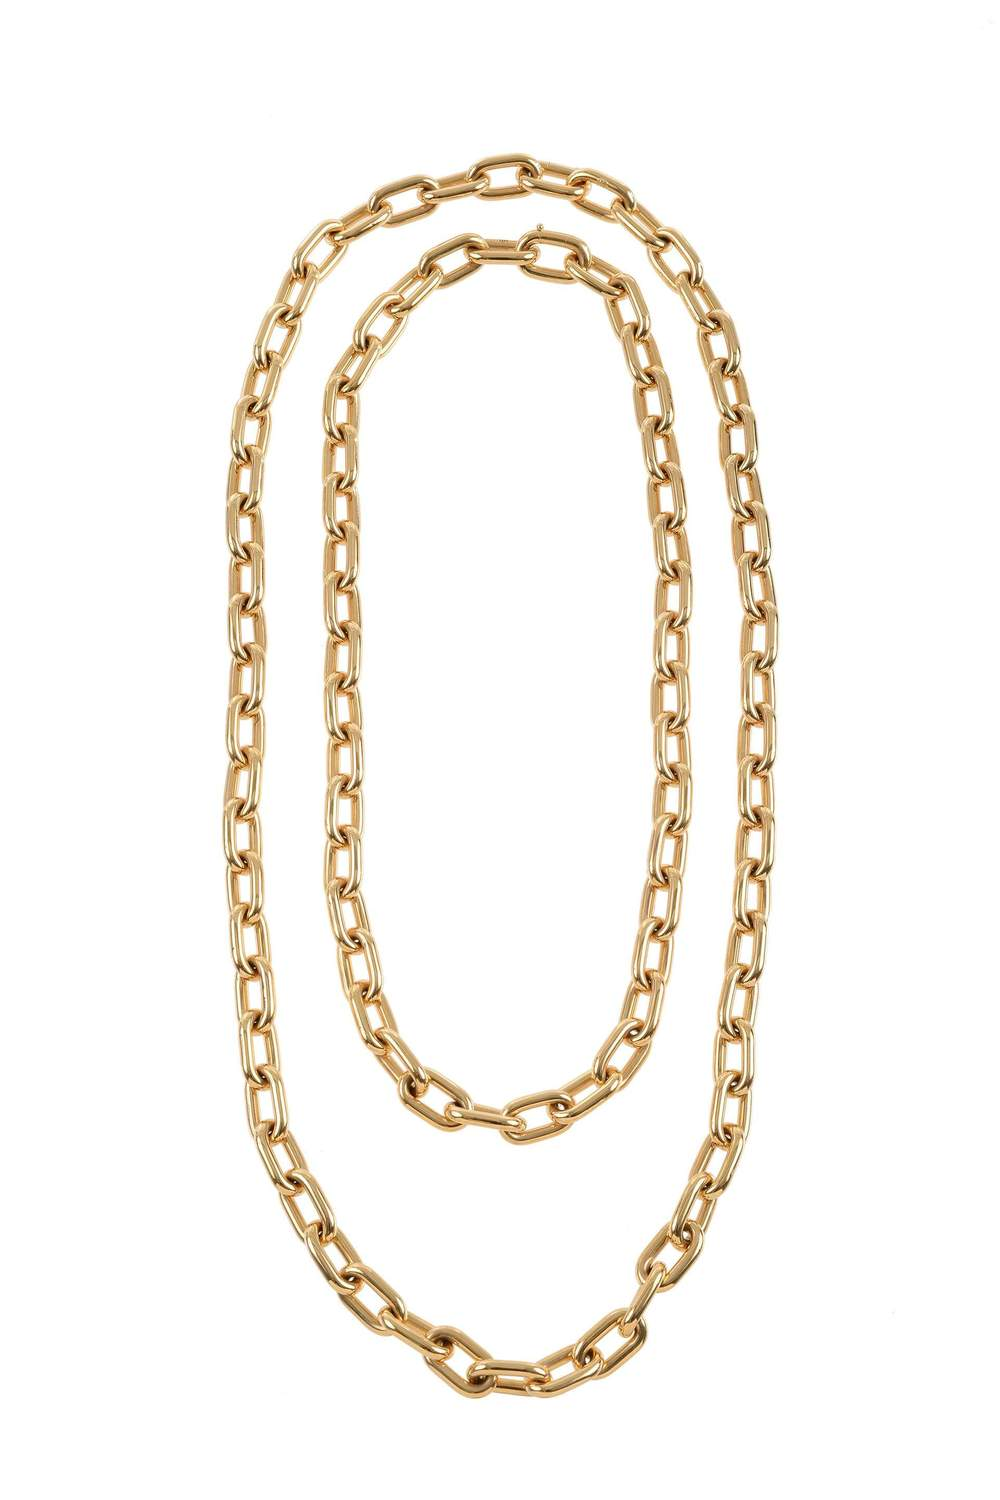 Medium Chain 18k Gold